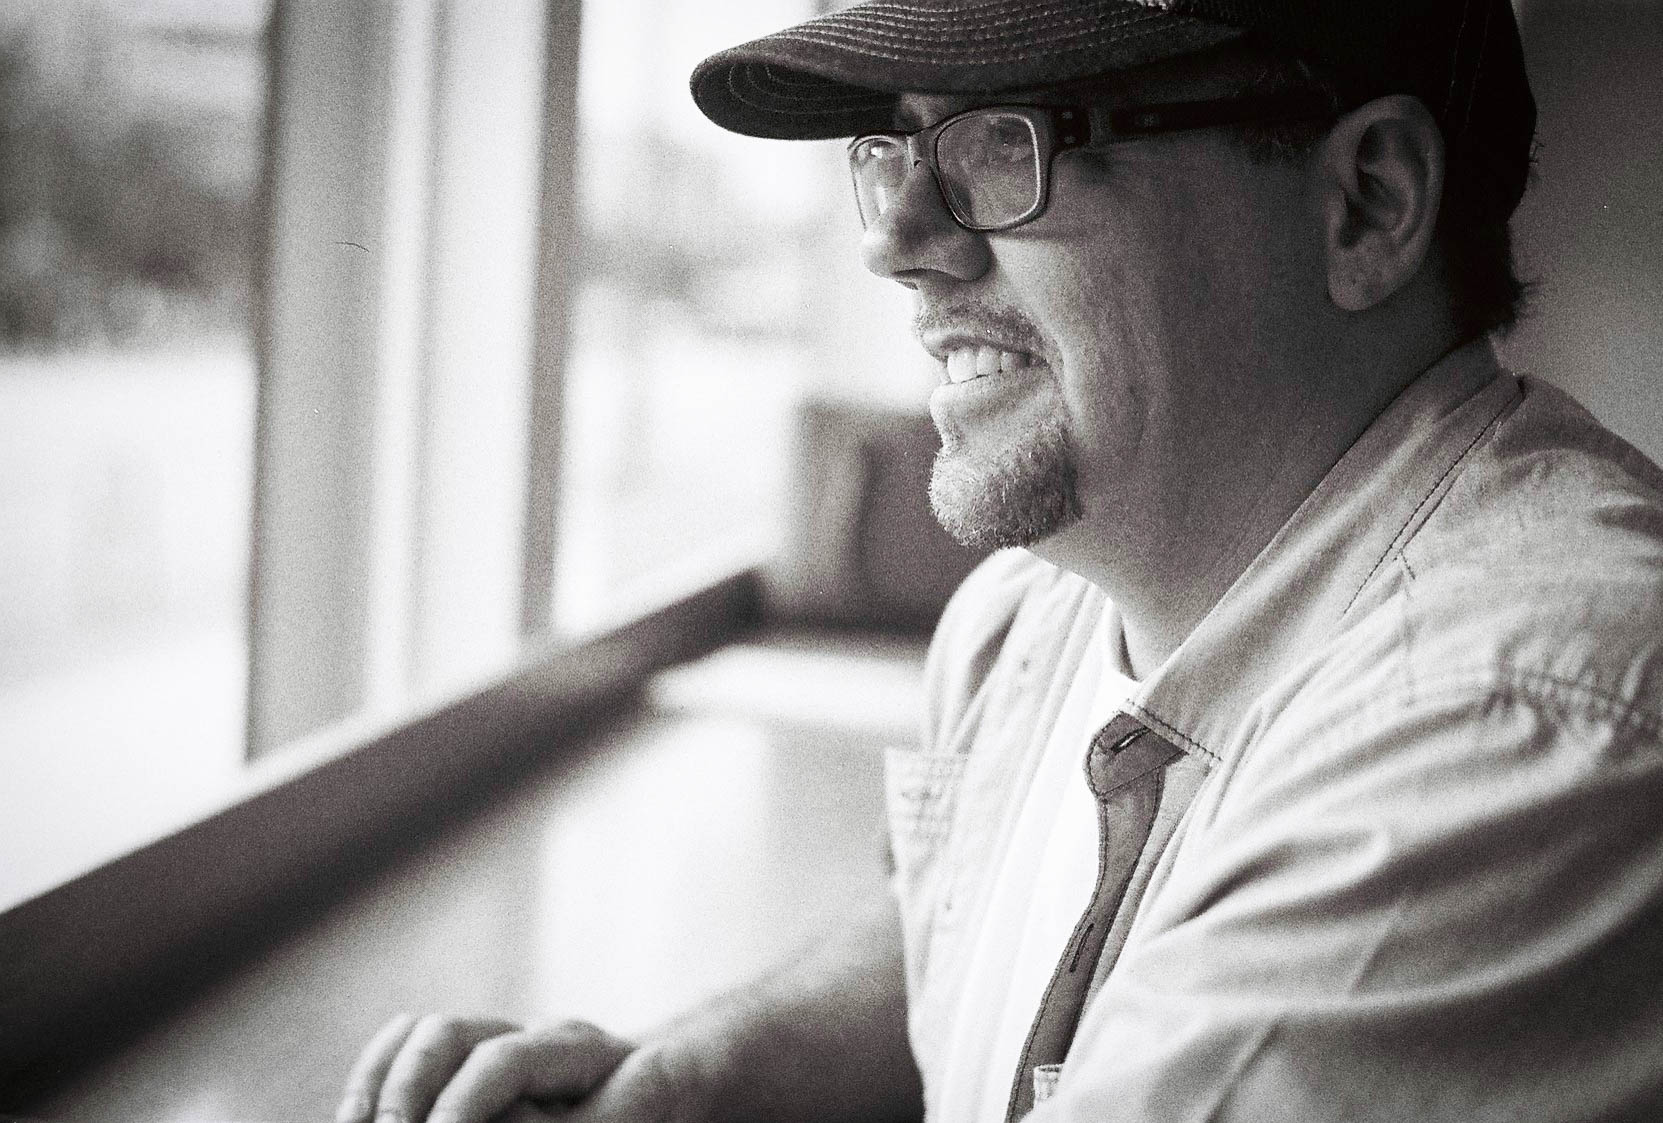 Jake Elysian Cafe, Vancouver Canon L1, 50mm F1.4 TMax 400 film 6.16